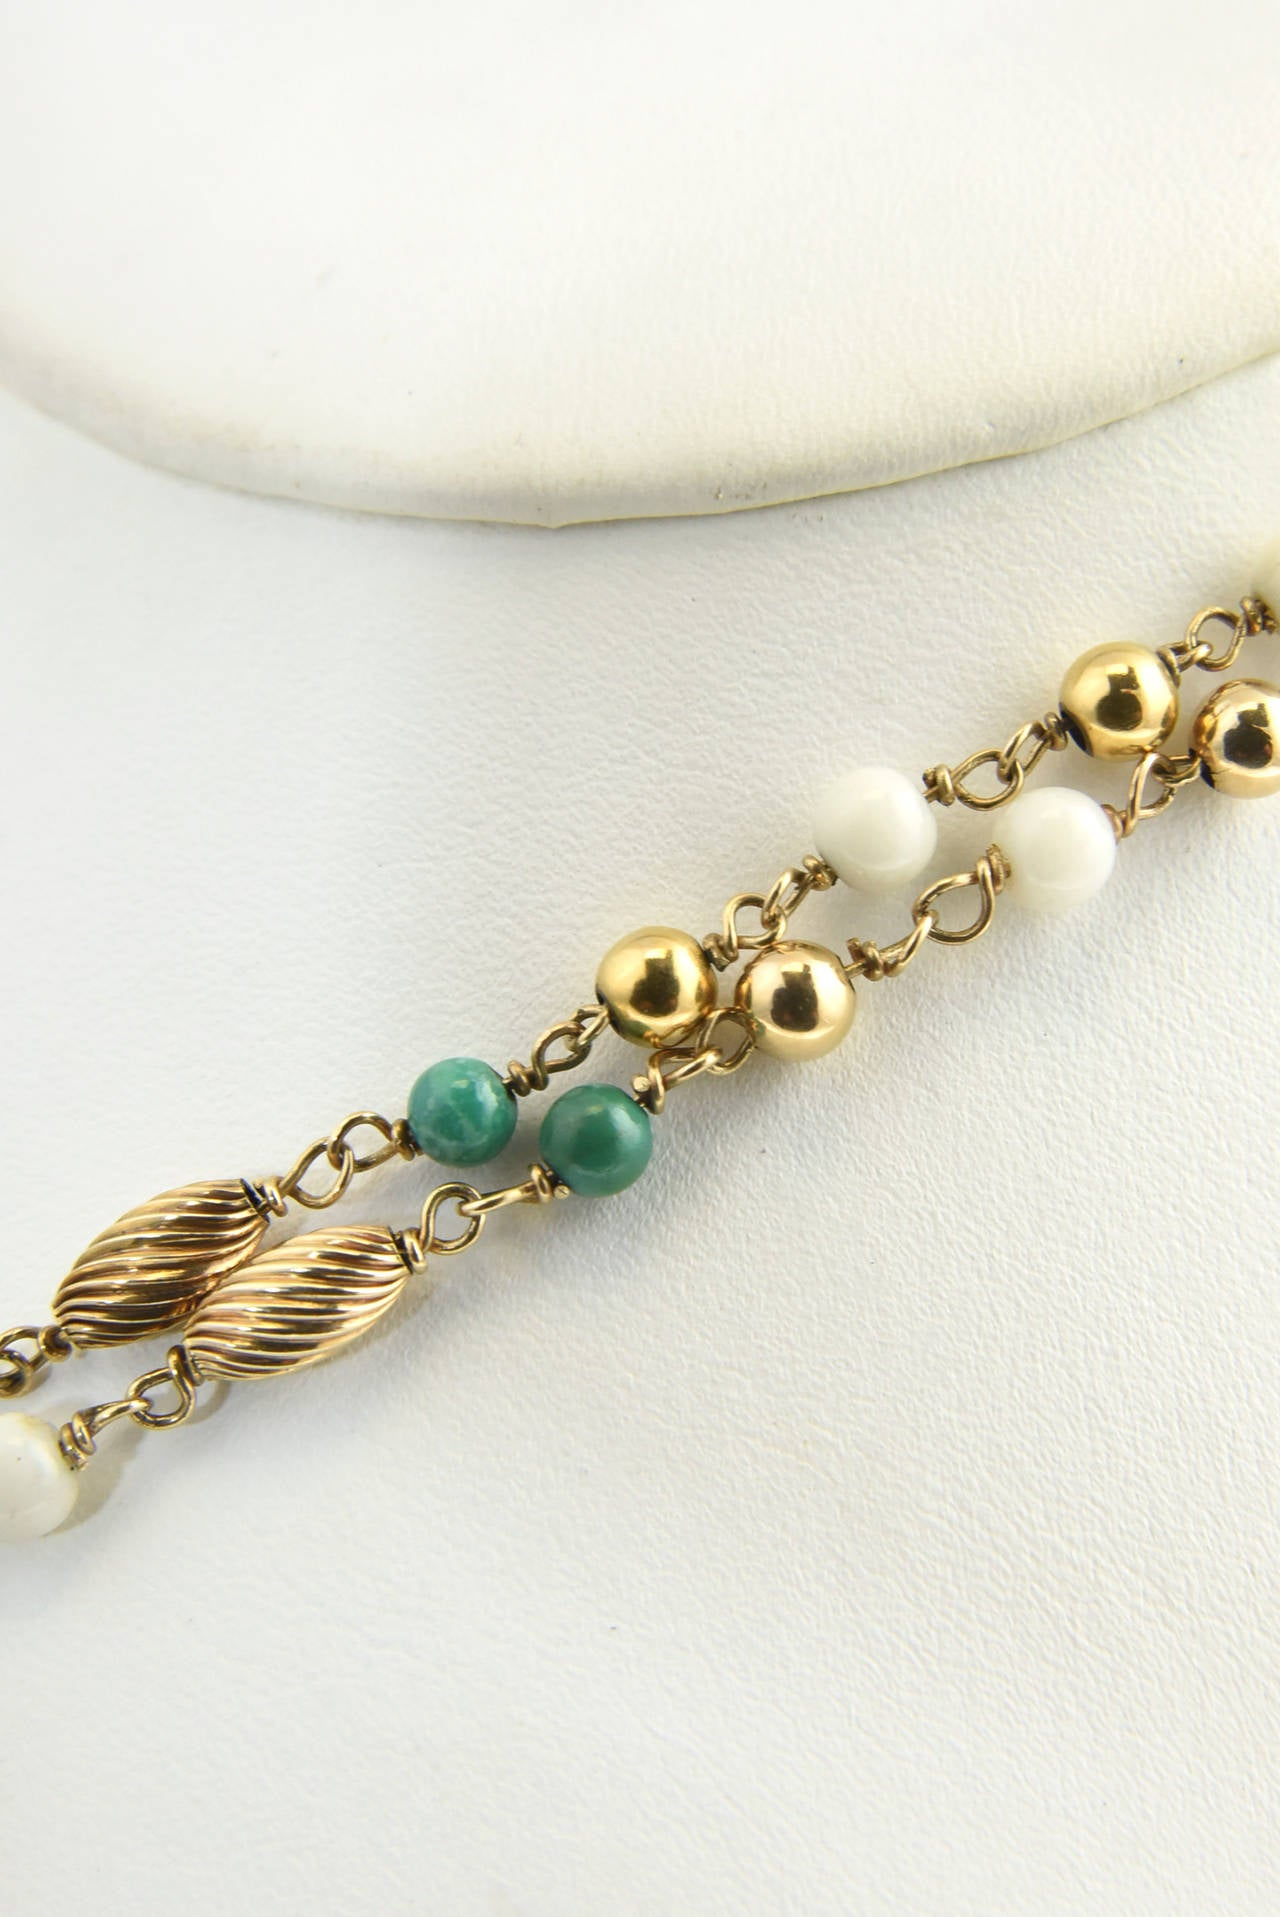 Cleopatra Inspired Turquoise and Gold Necklace with Victorian Pietra Dura Clasp 9